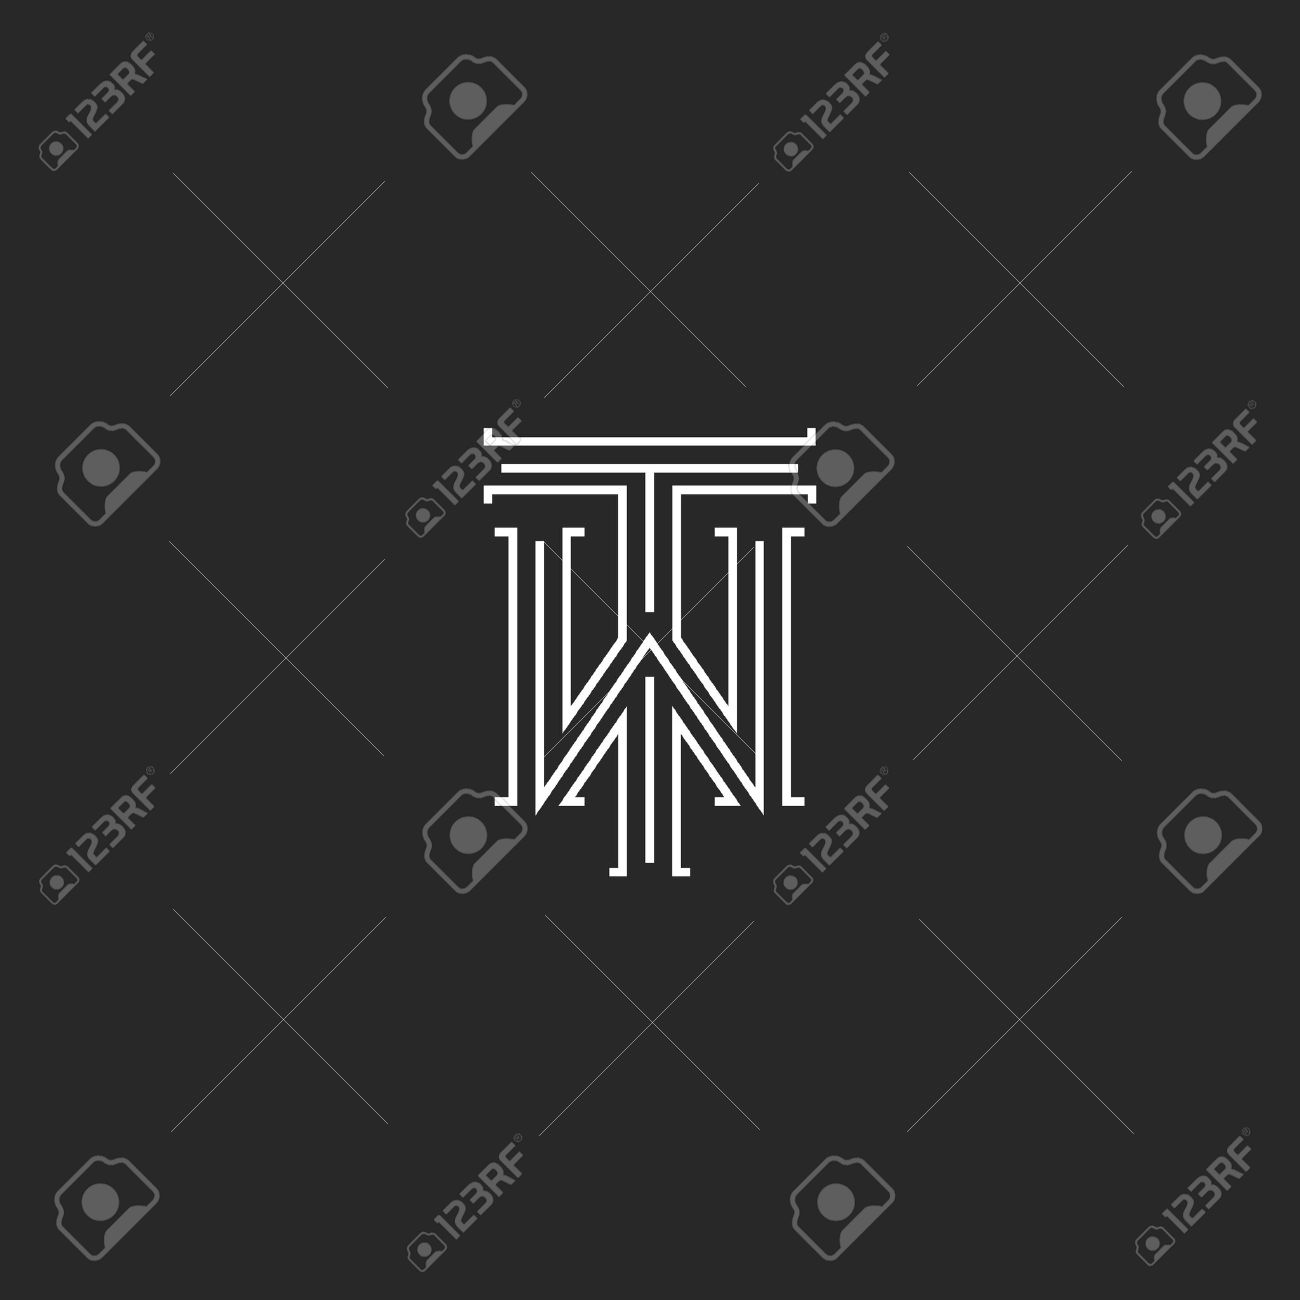 tw letters logo medieval monogram black and white combination intersection initials wt for wedding invitation emblem